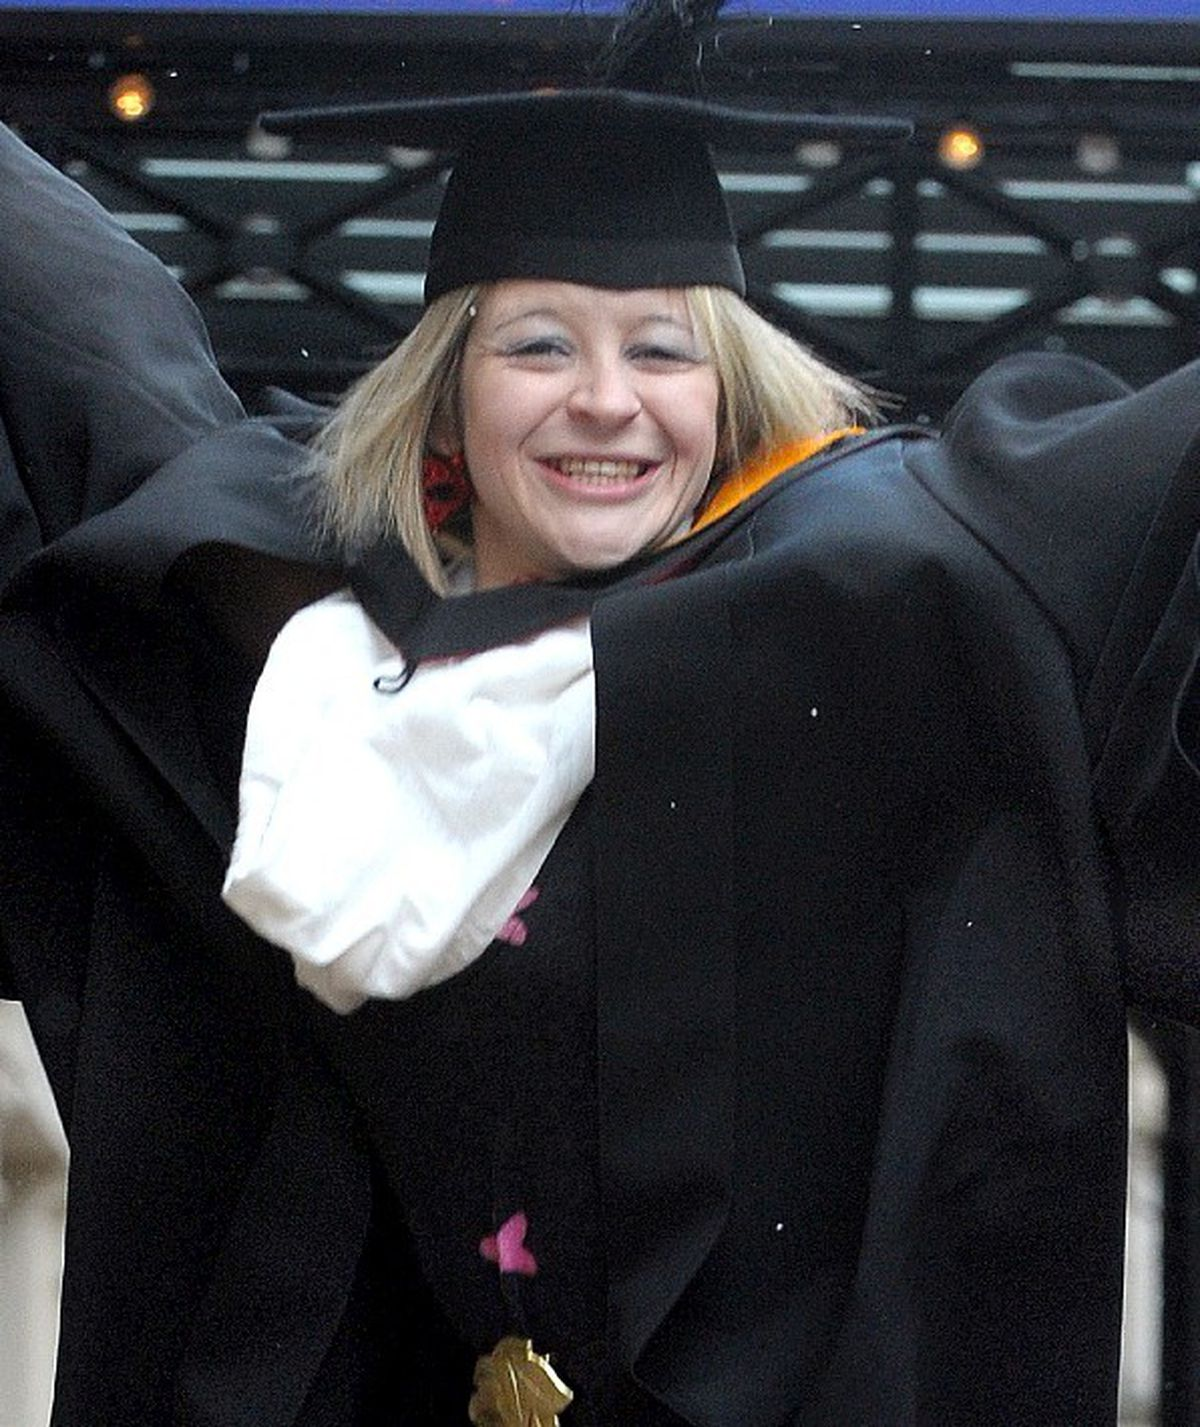 Lucy Fox at her graduation in 2009